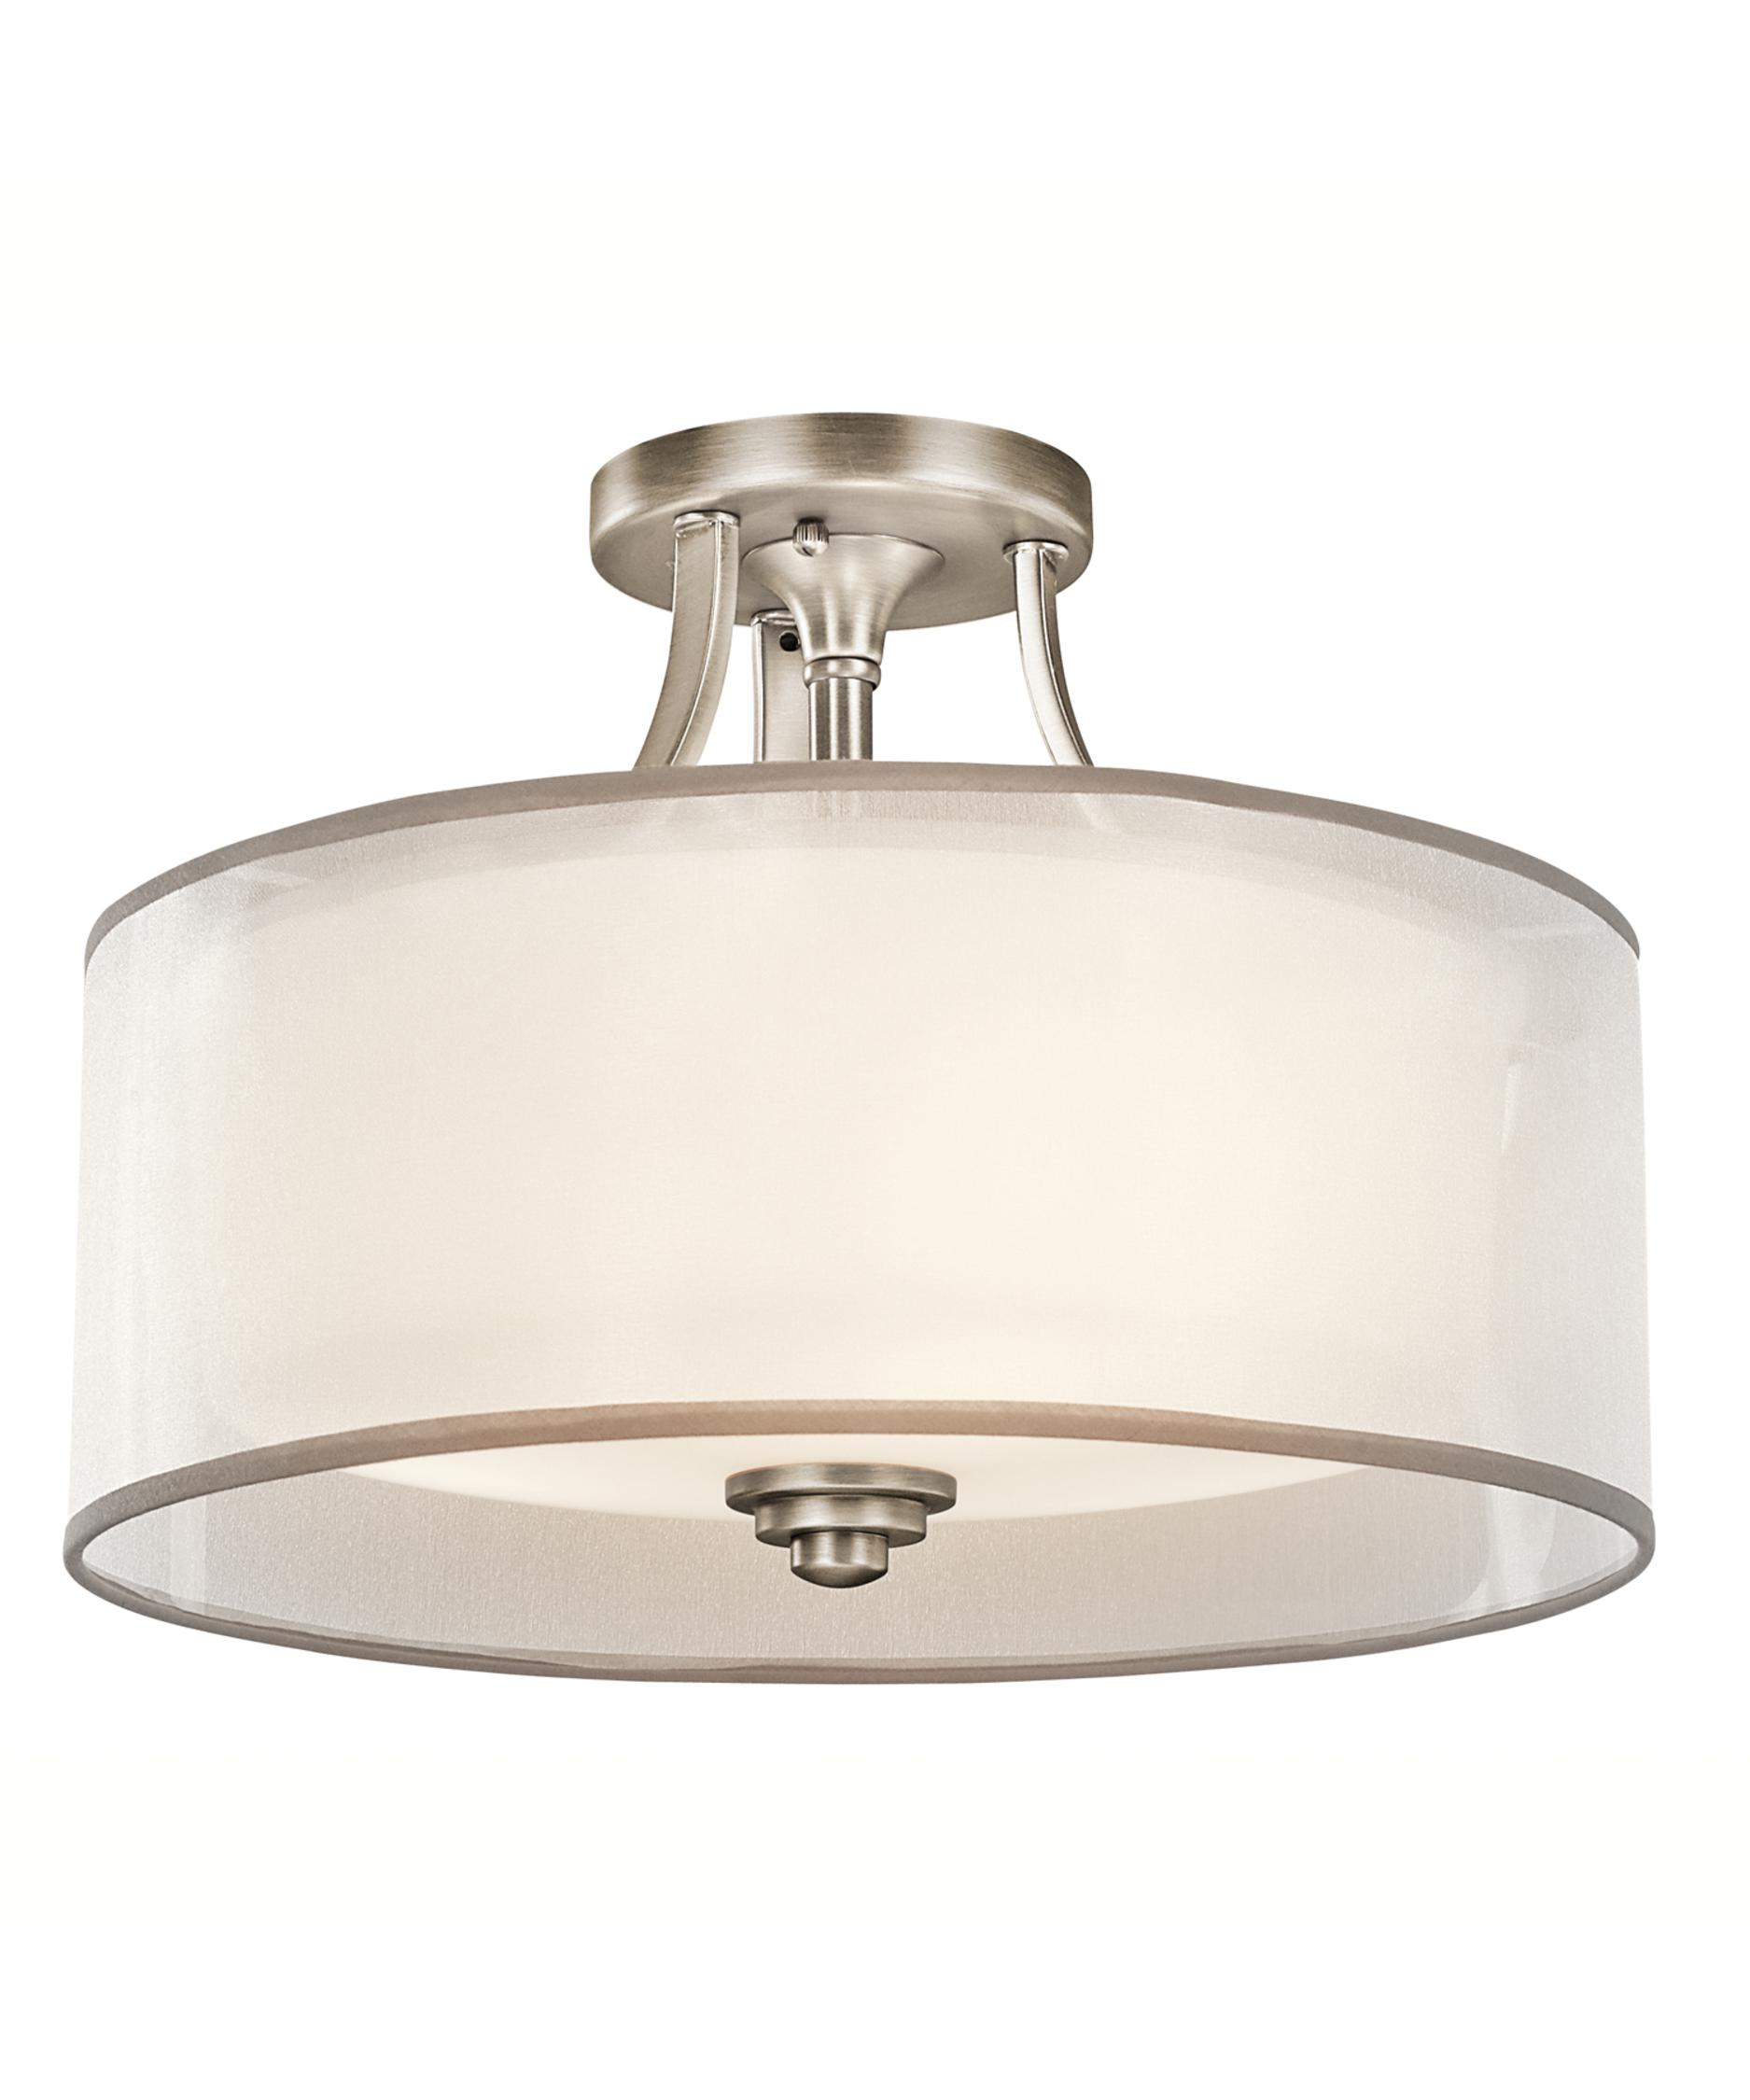 item kitchen lighting flush mount Shown in Antique Pewter finish and Opal Etched glass